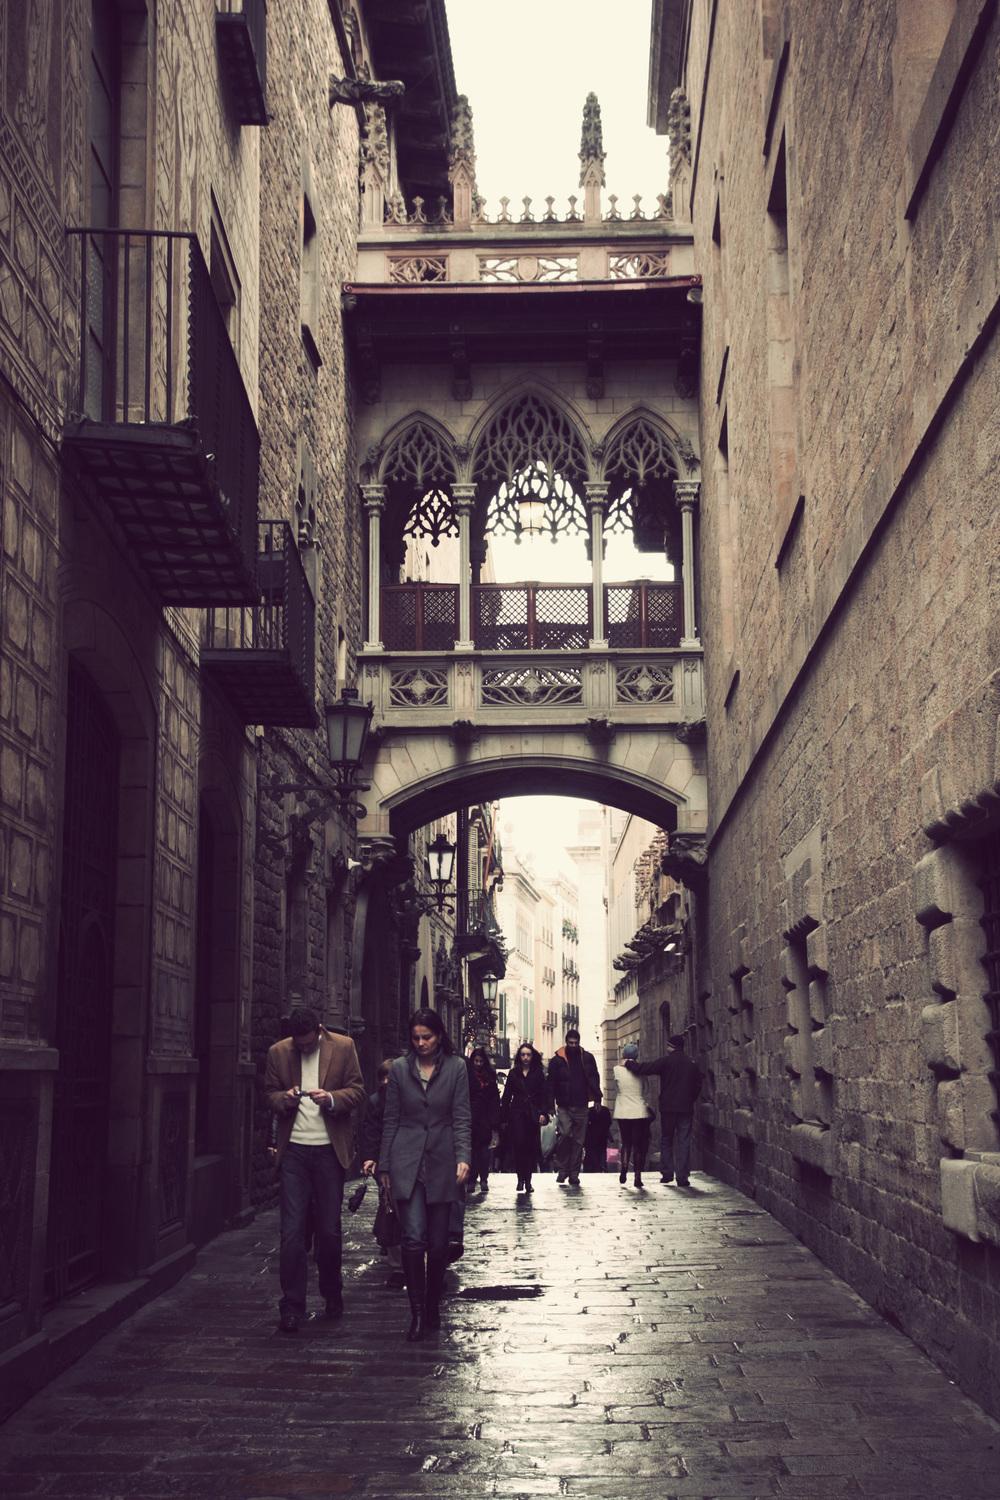 BCN_Barri Gotic_01.jpg